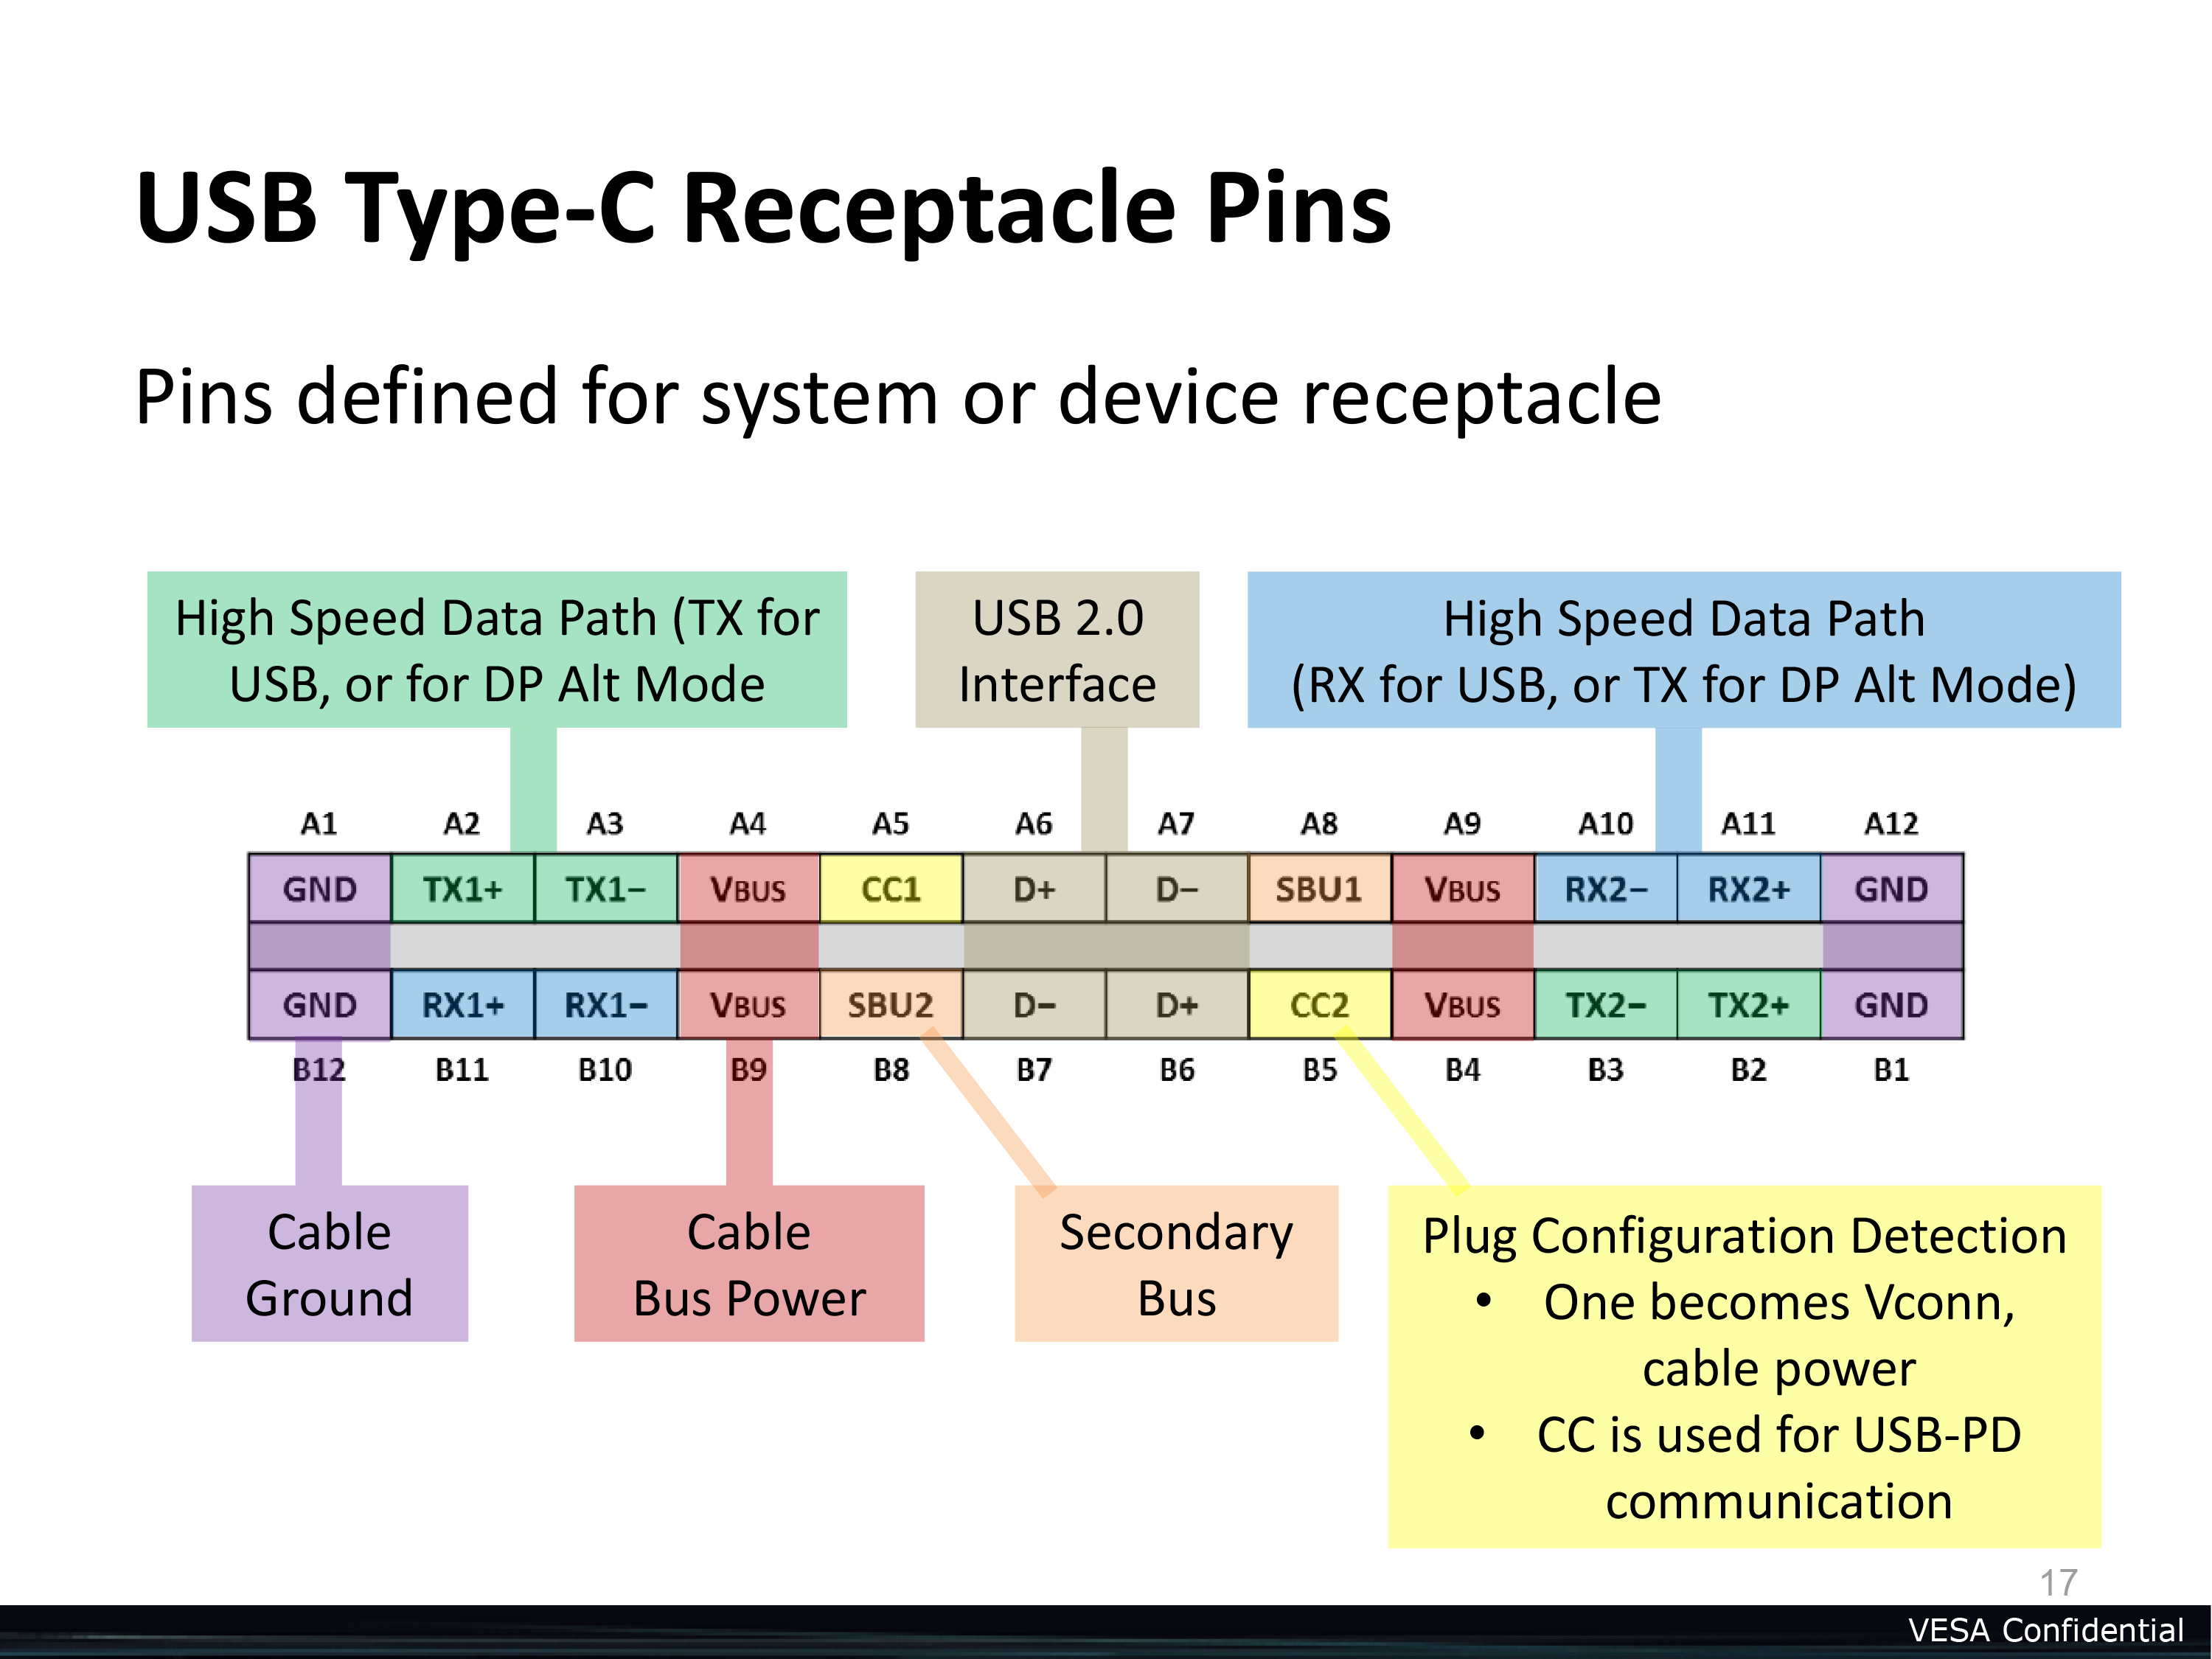 Usb Type A Connector Wiring Diagram | Wiring Diagram - Wiring Diagram For Micro Usb Cable